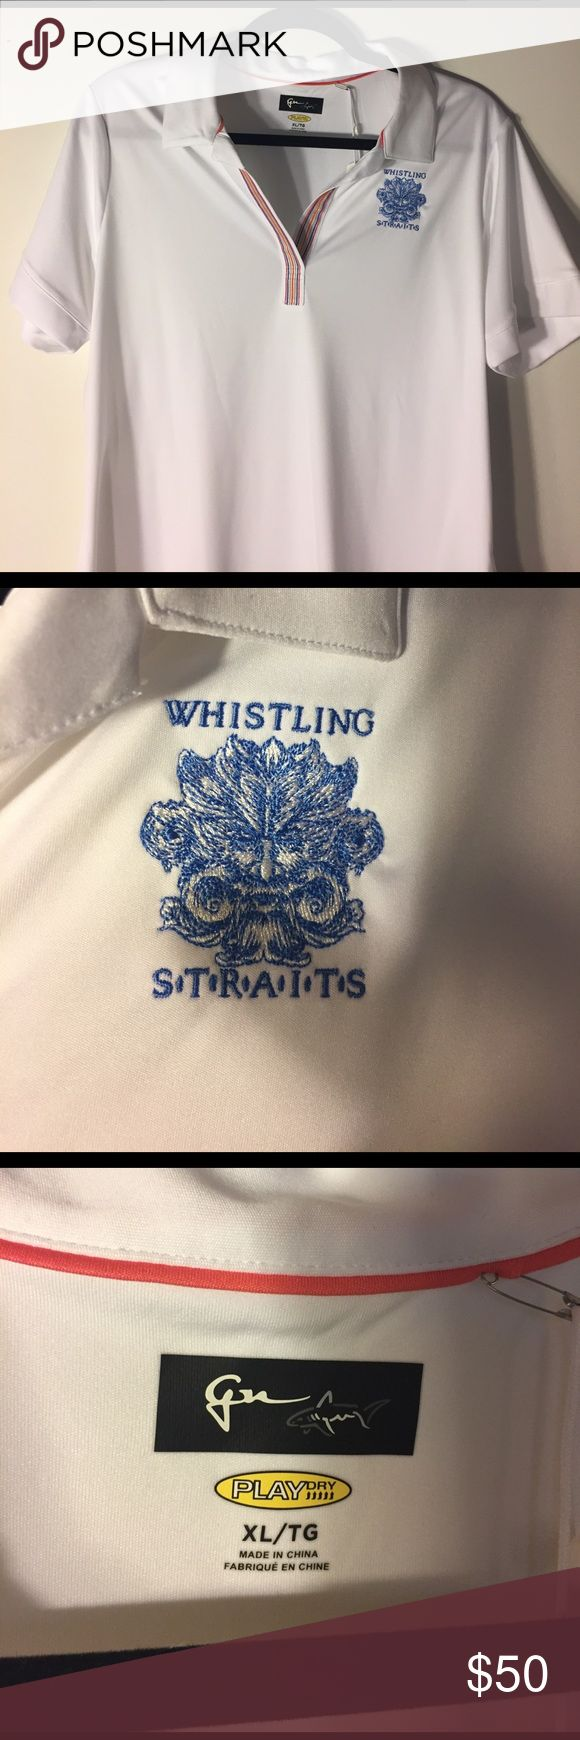 Whistling straits womens golf shirt XL Whistling straits logo women's golf/sport shirt. White microfiber sweat wicking fabric. NWT. Make an offer. Tops